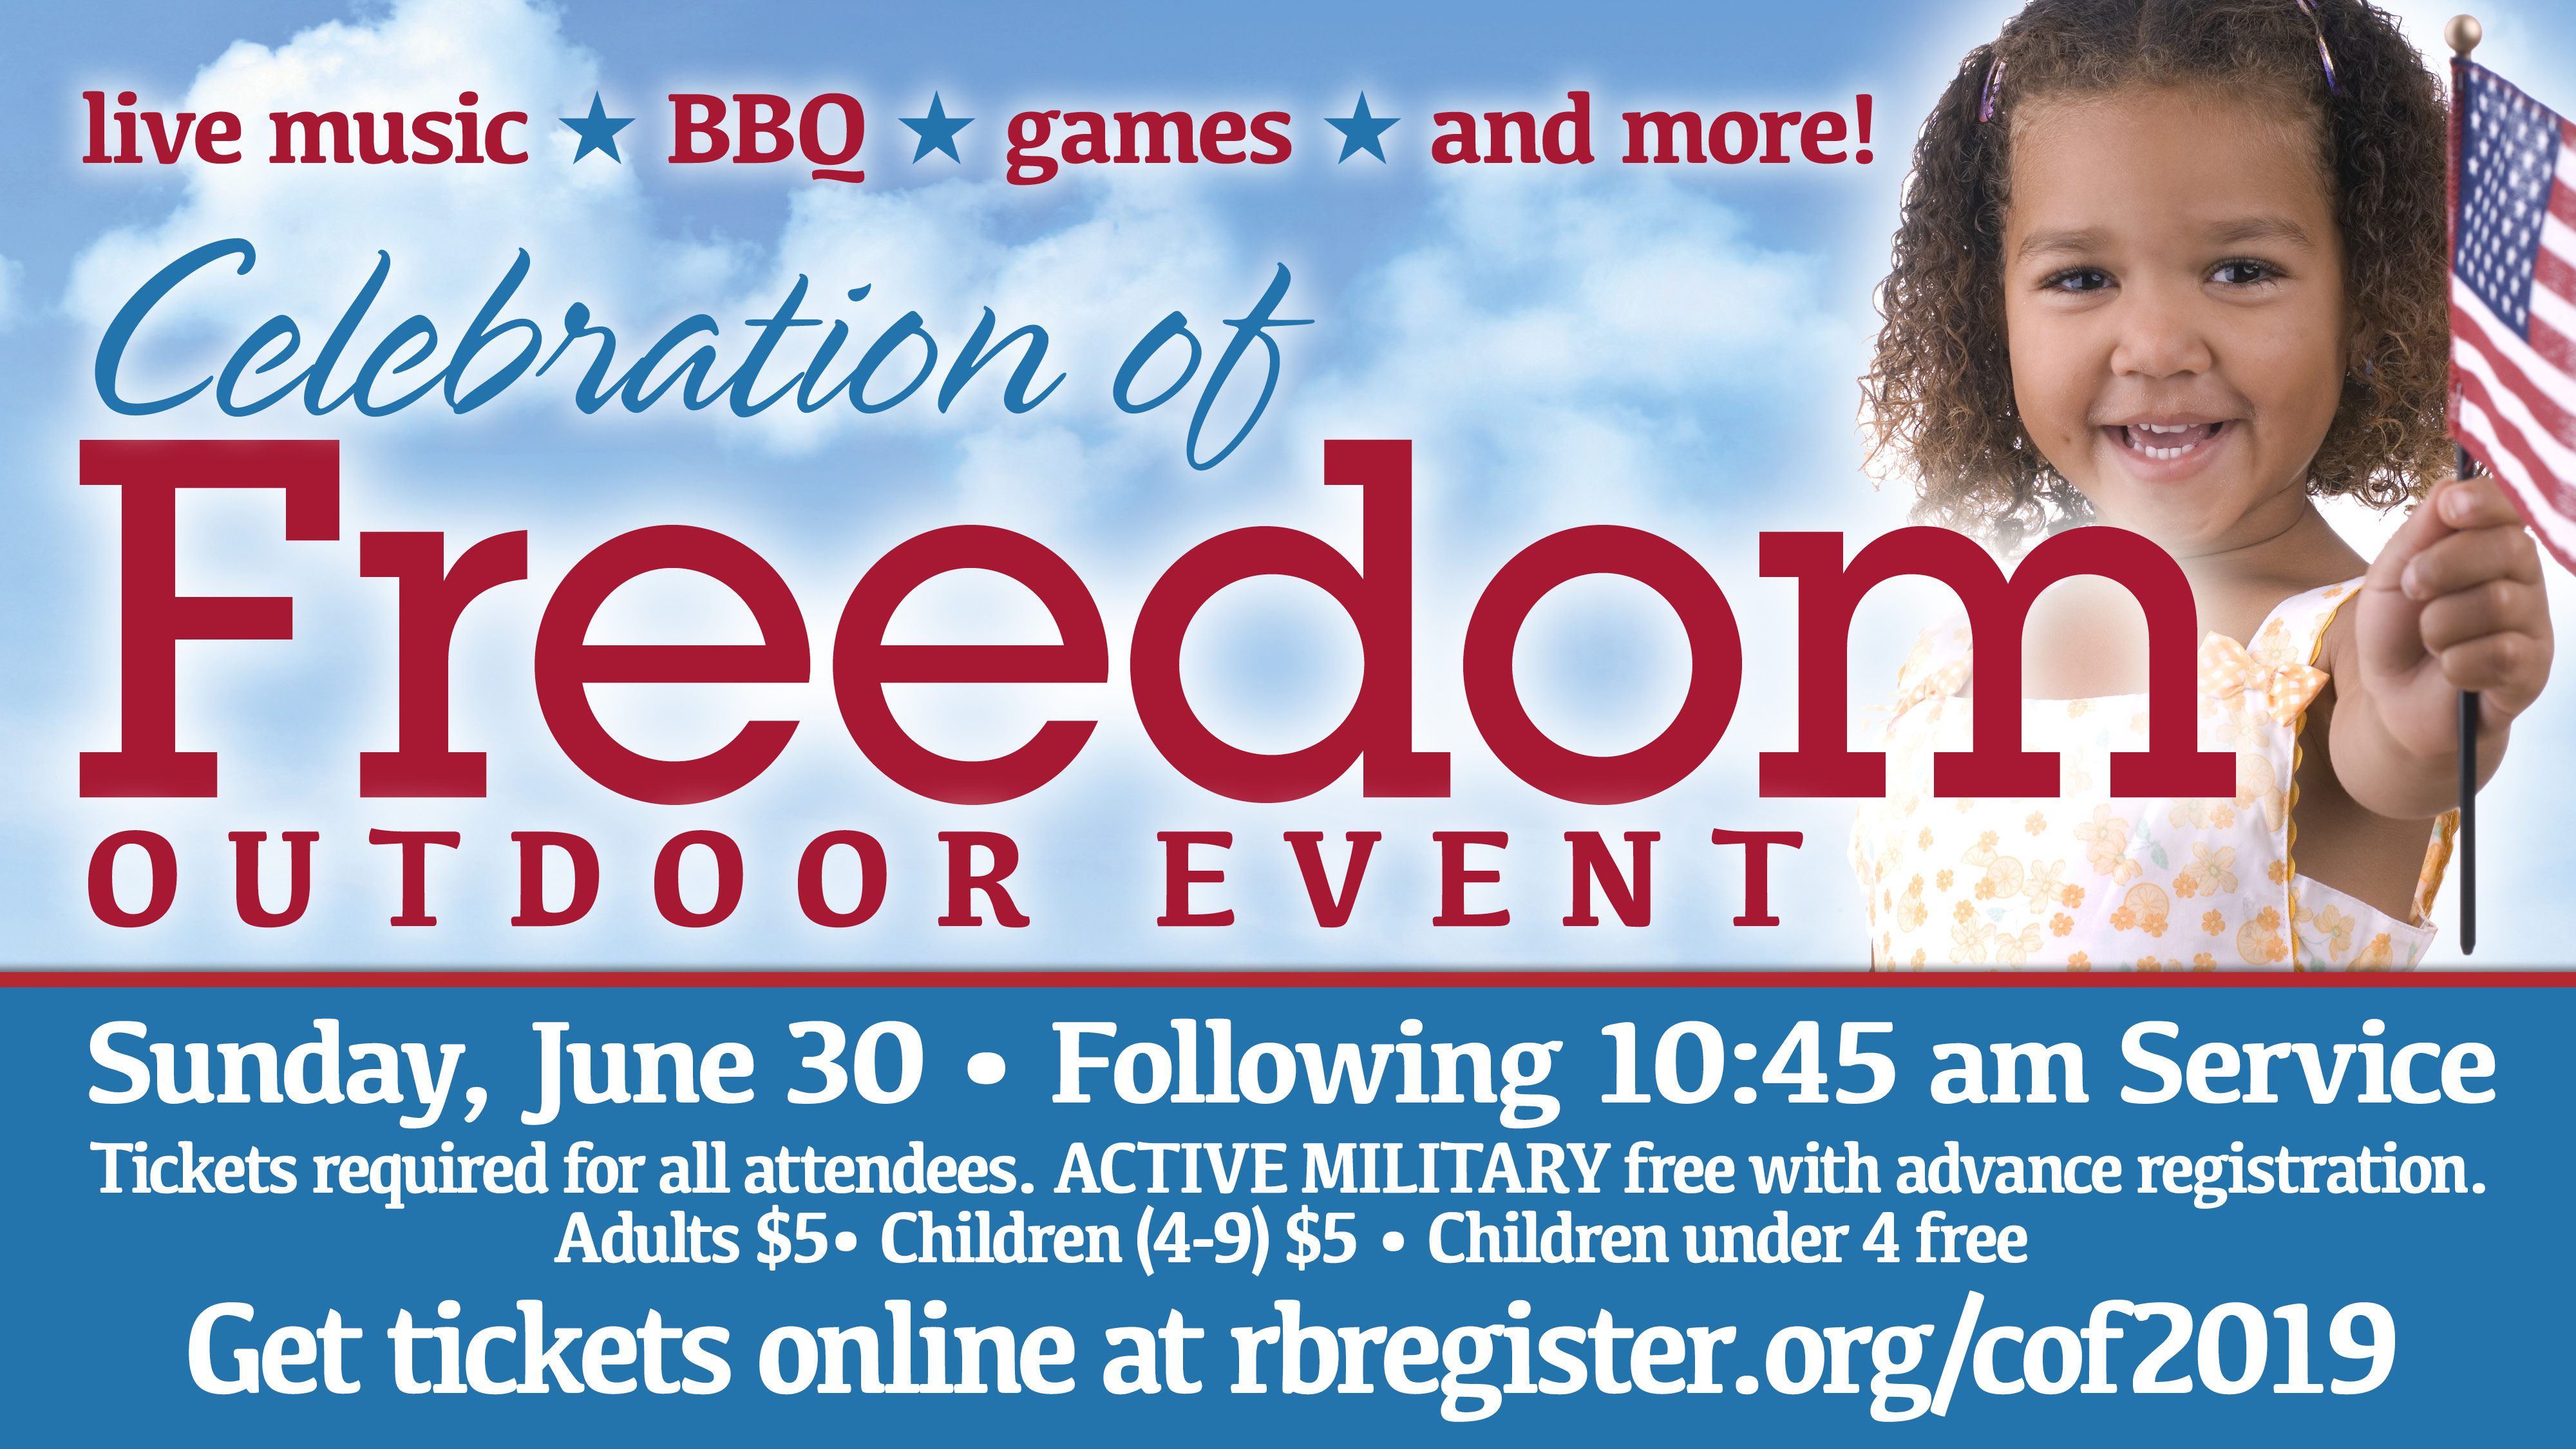 Celebration of Freedom Outdoor Event